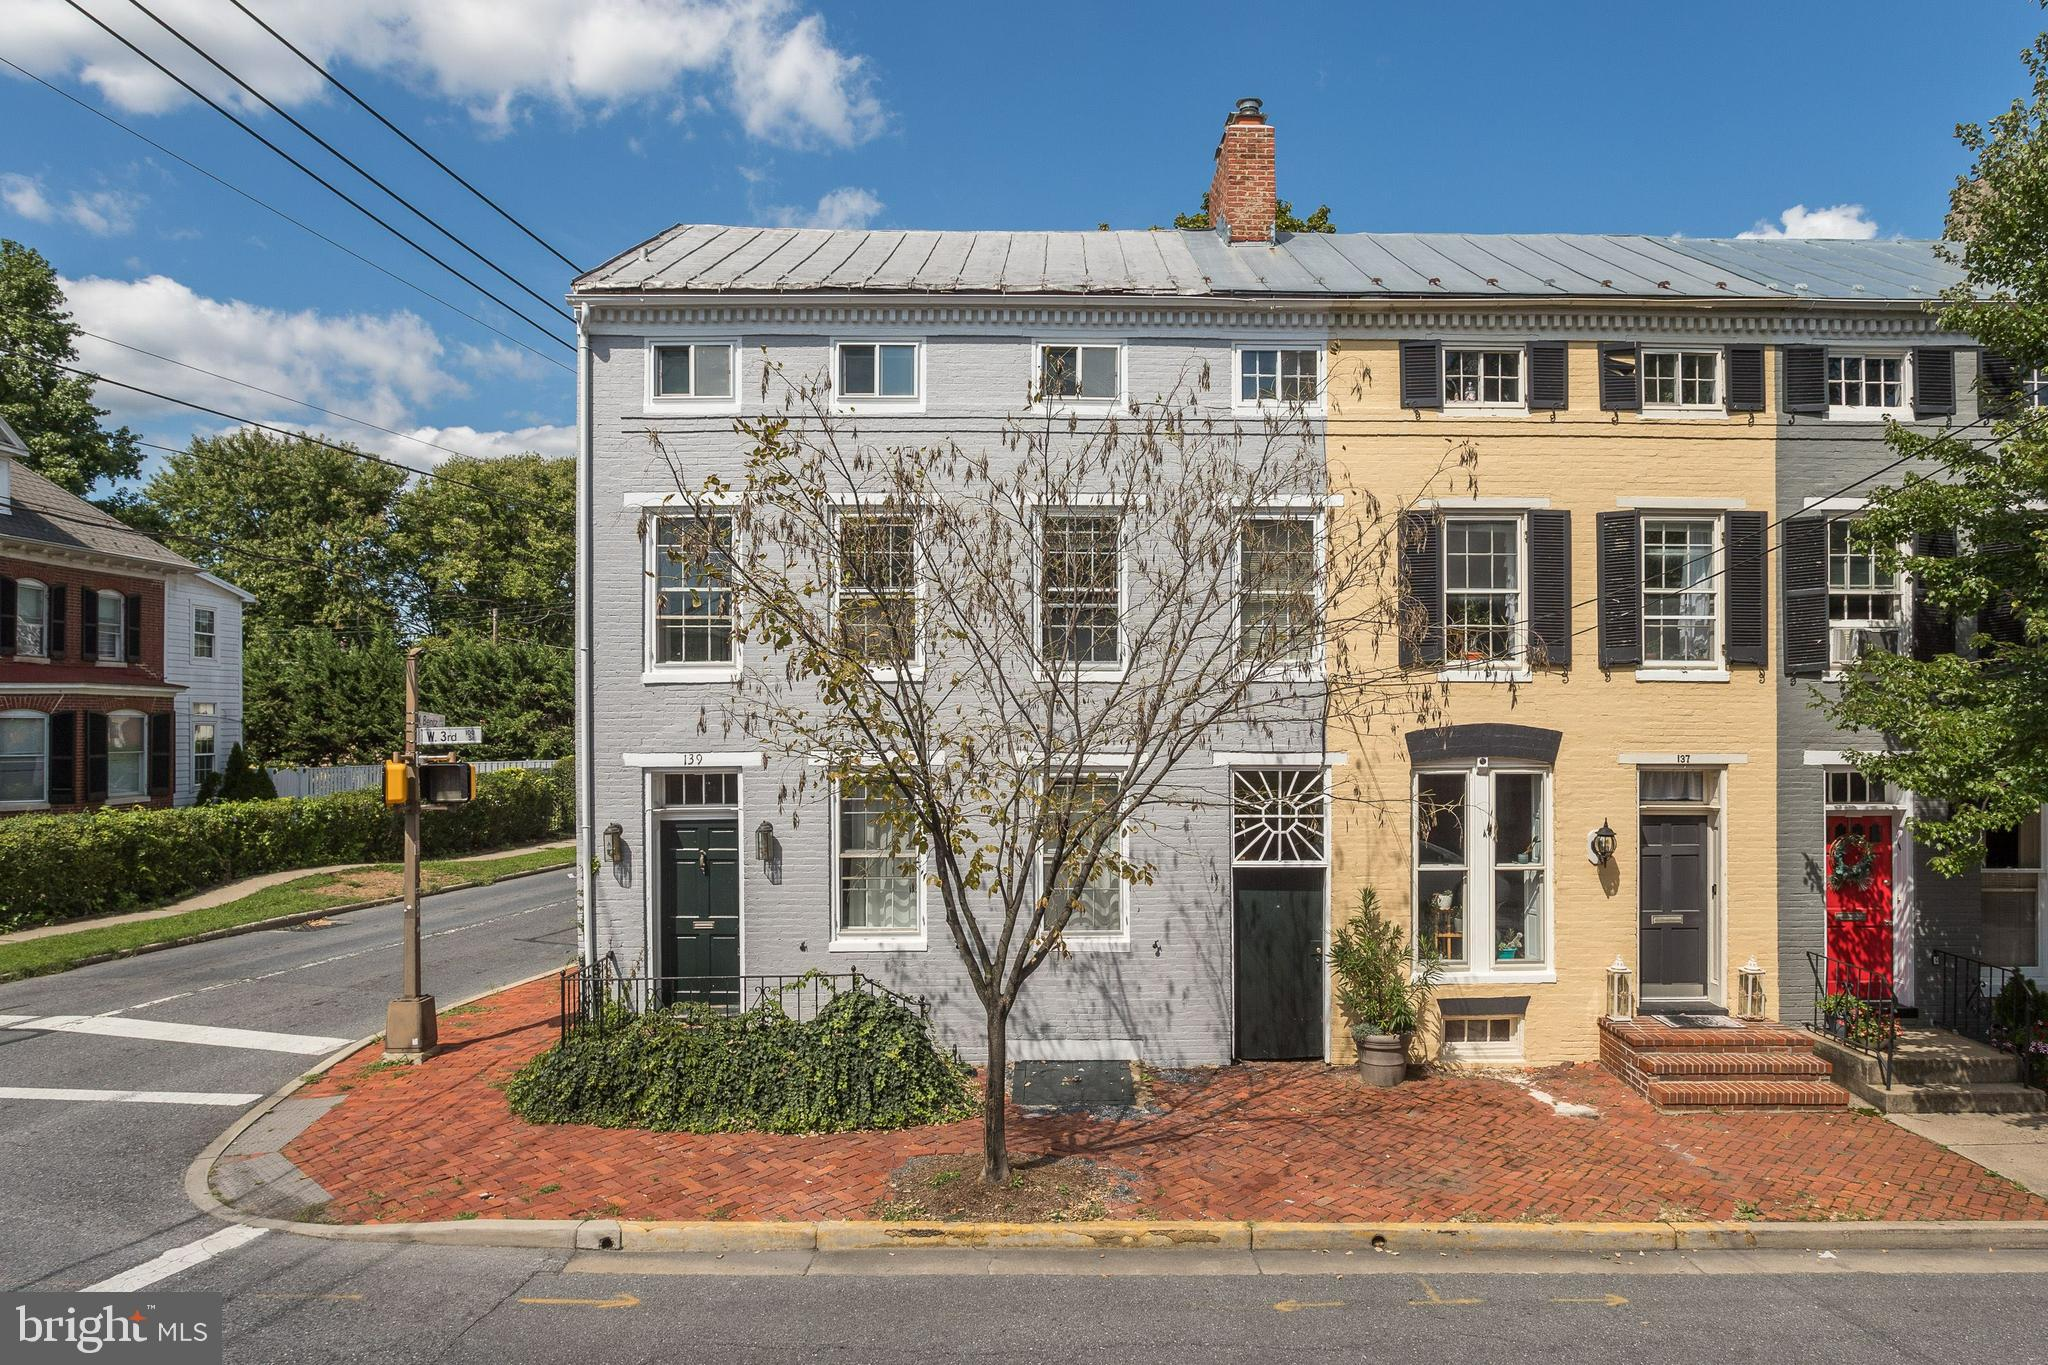 Remarkable brick home located in downtown Frederick boasting historic charm and some modern flair! L